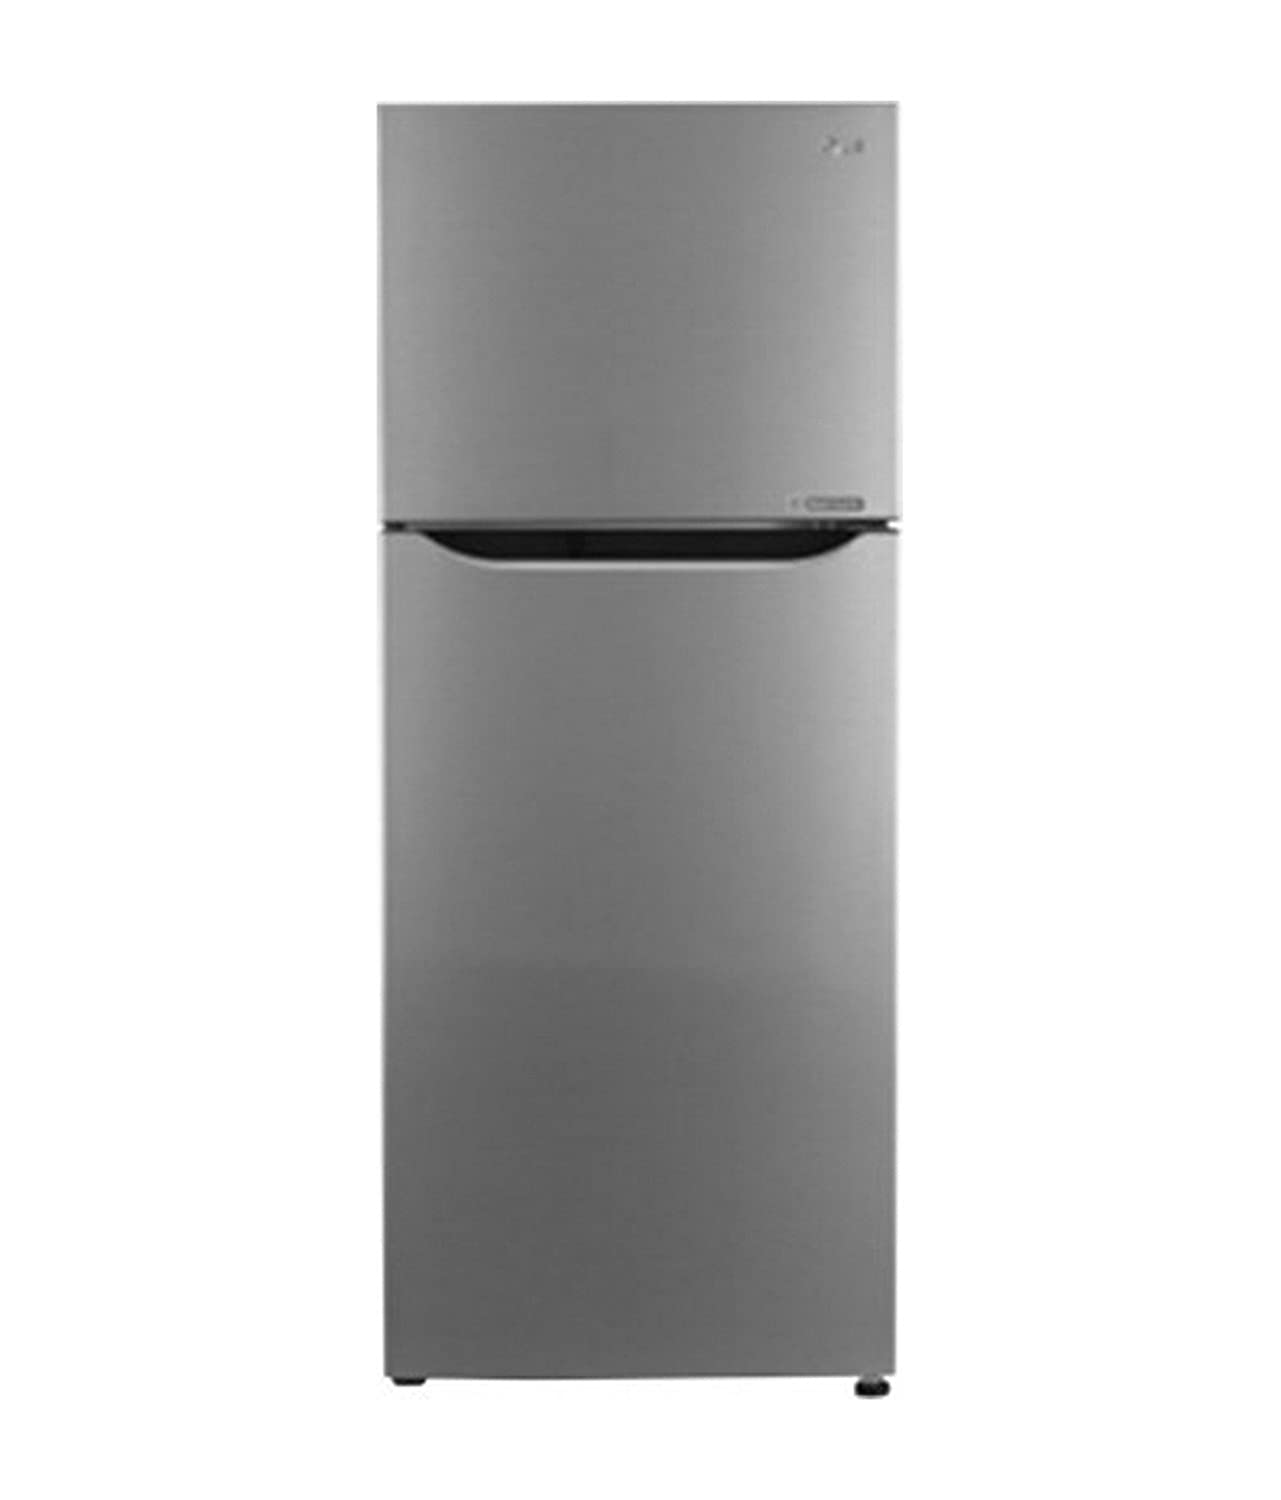 LG GL-I372RTNL Frost-free Freezer-on-Top Refrigerator (335 Ltrs, 4 Star Rating, Titanium) By Amazon @ Rs.31,732